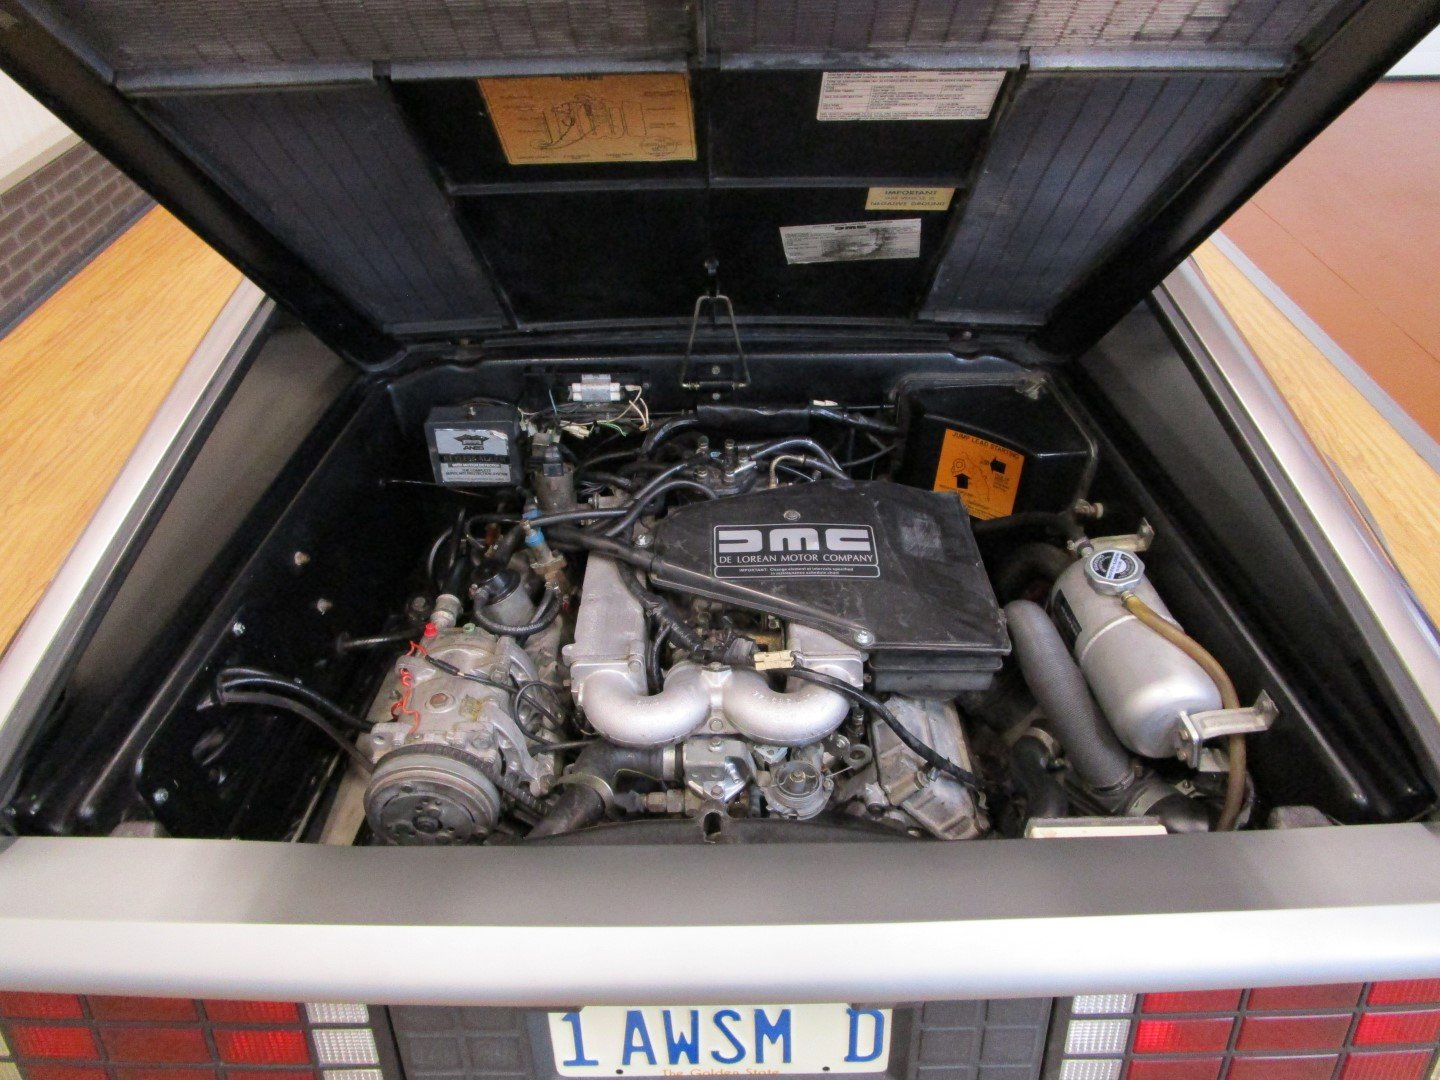 1983 DeLorean DMC-12 For Sale (picture 6 of 6)